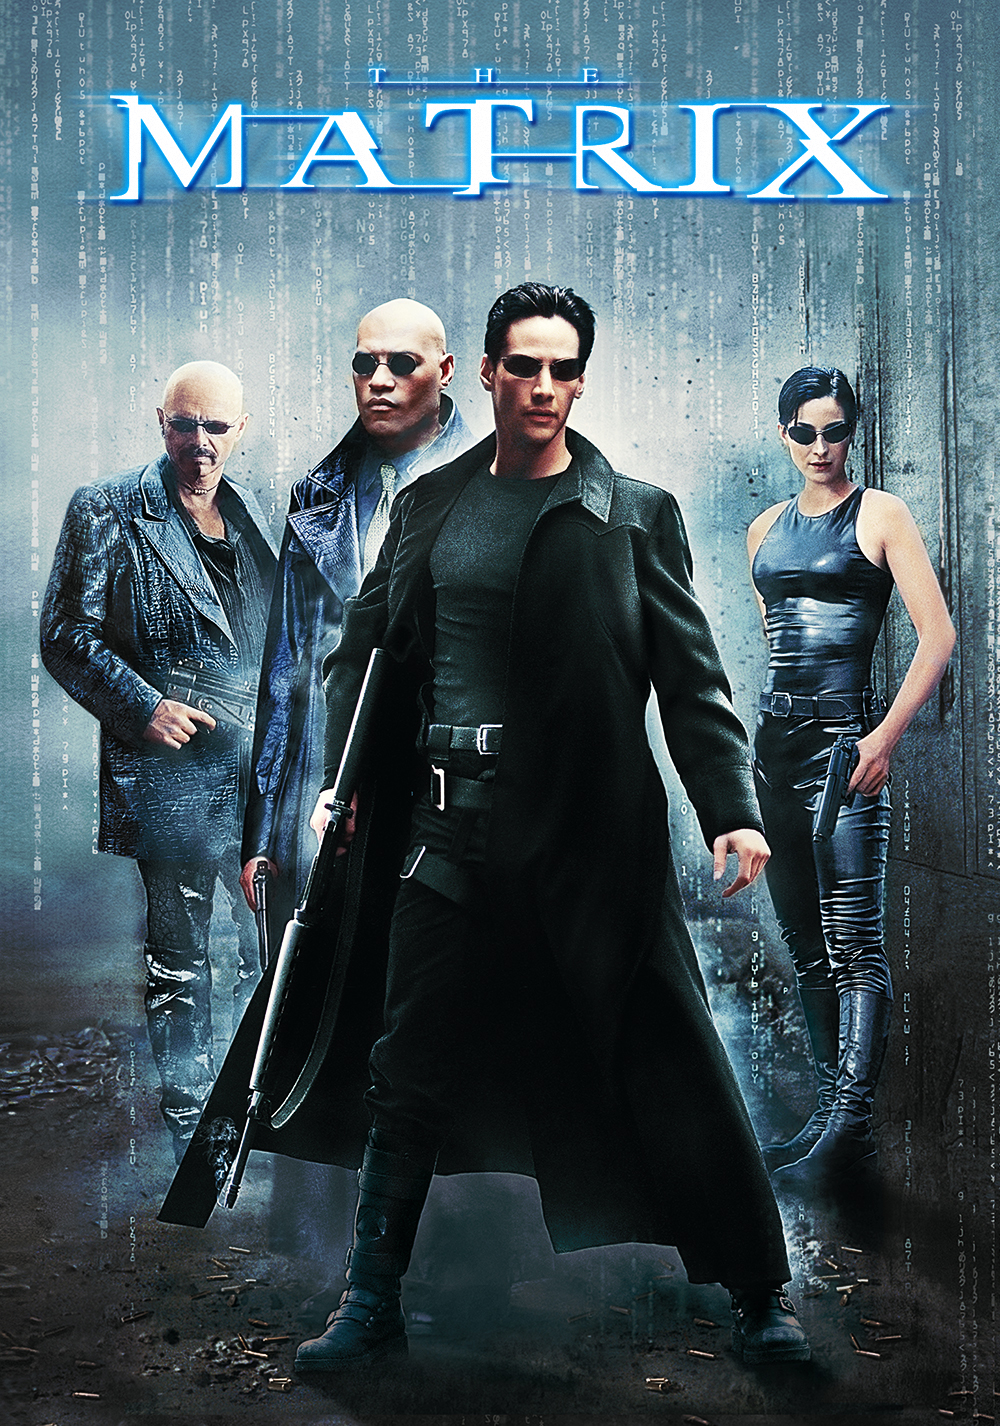 the-matrix-53b1a283180a1